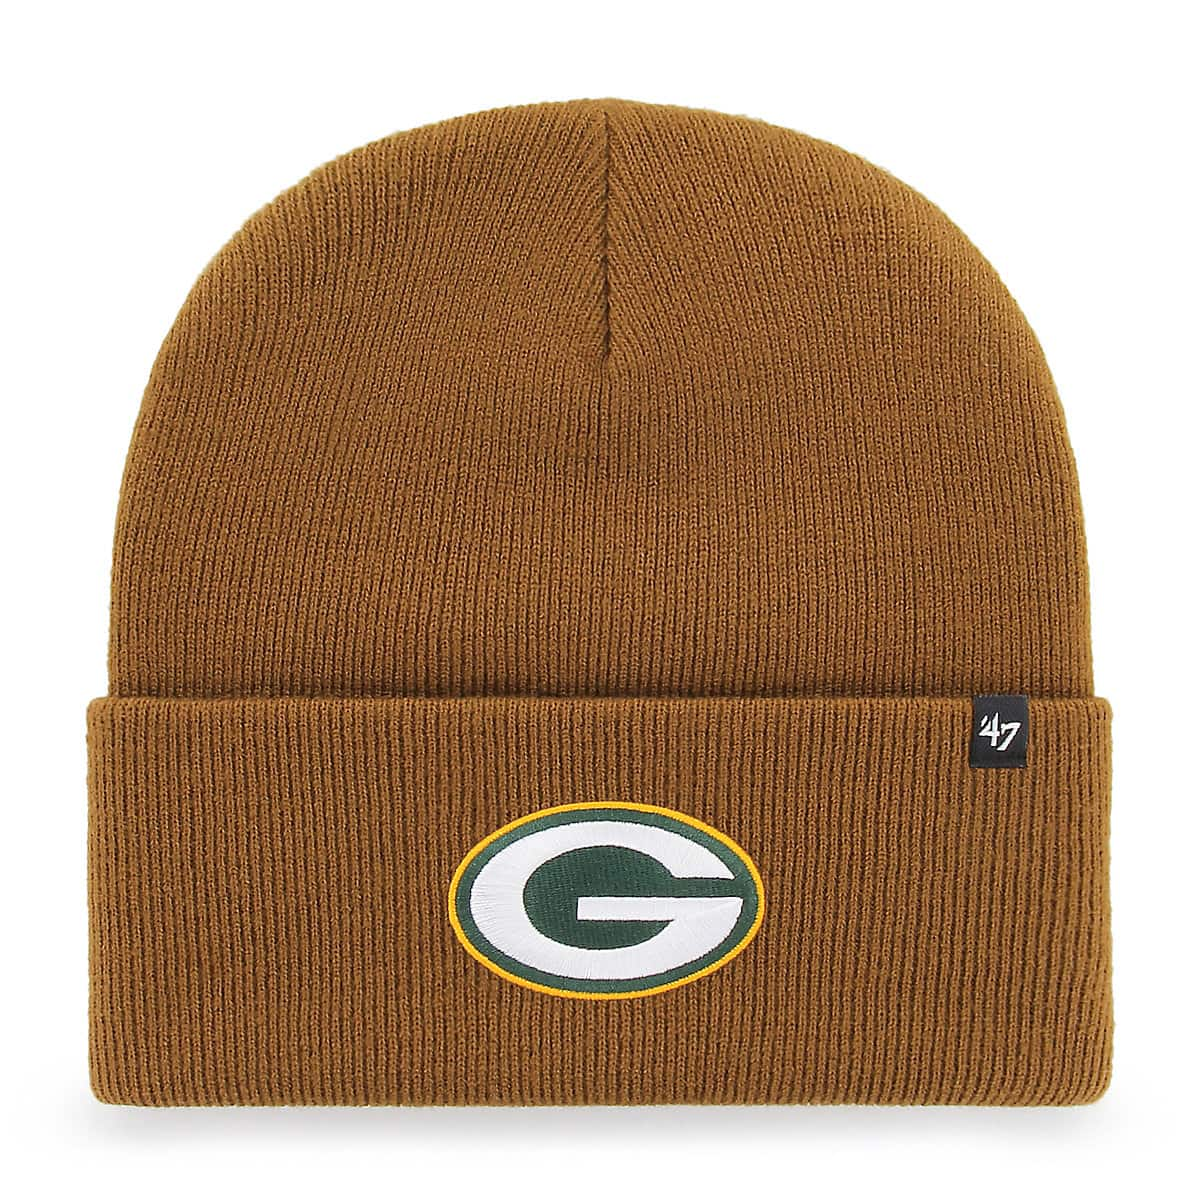 5ee64d5a3eb61 Men s Green Bay Packers Carhartt x  47 Cuff Knit CRKTN12